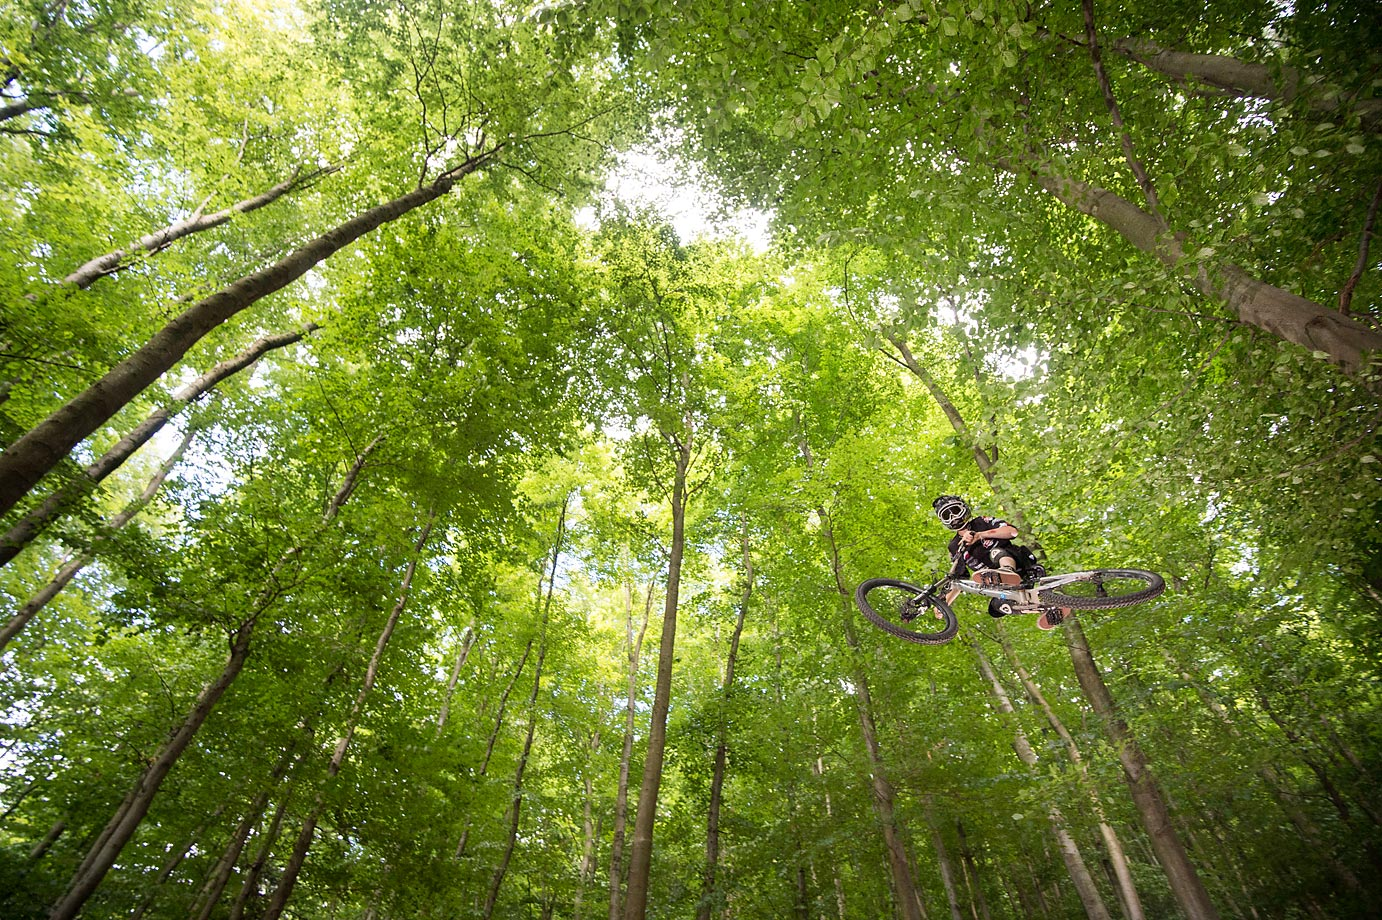 A downhill mountain biker performs at the 'Rinne' at the mountain 'Frankenstein' near Darmstadt, Germany.